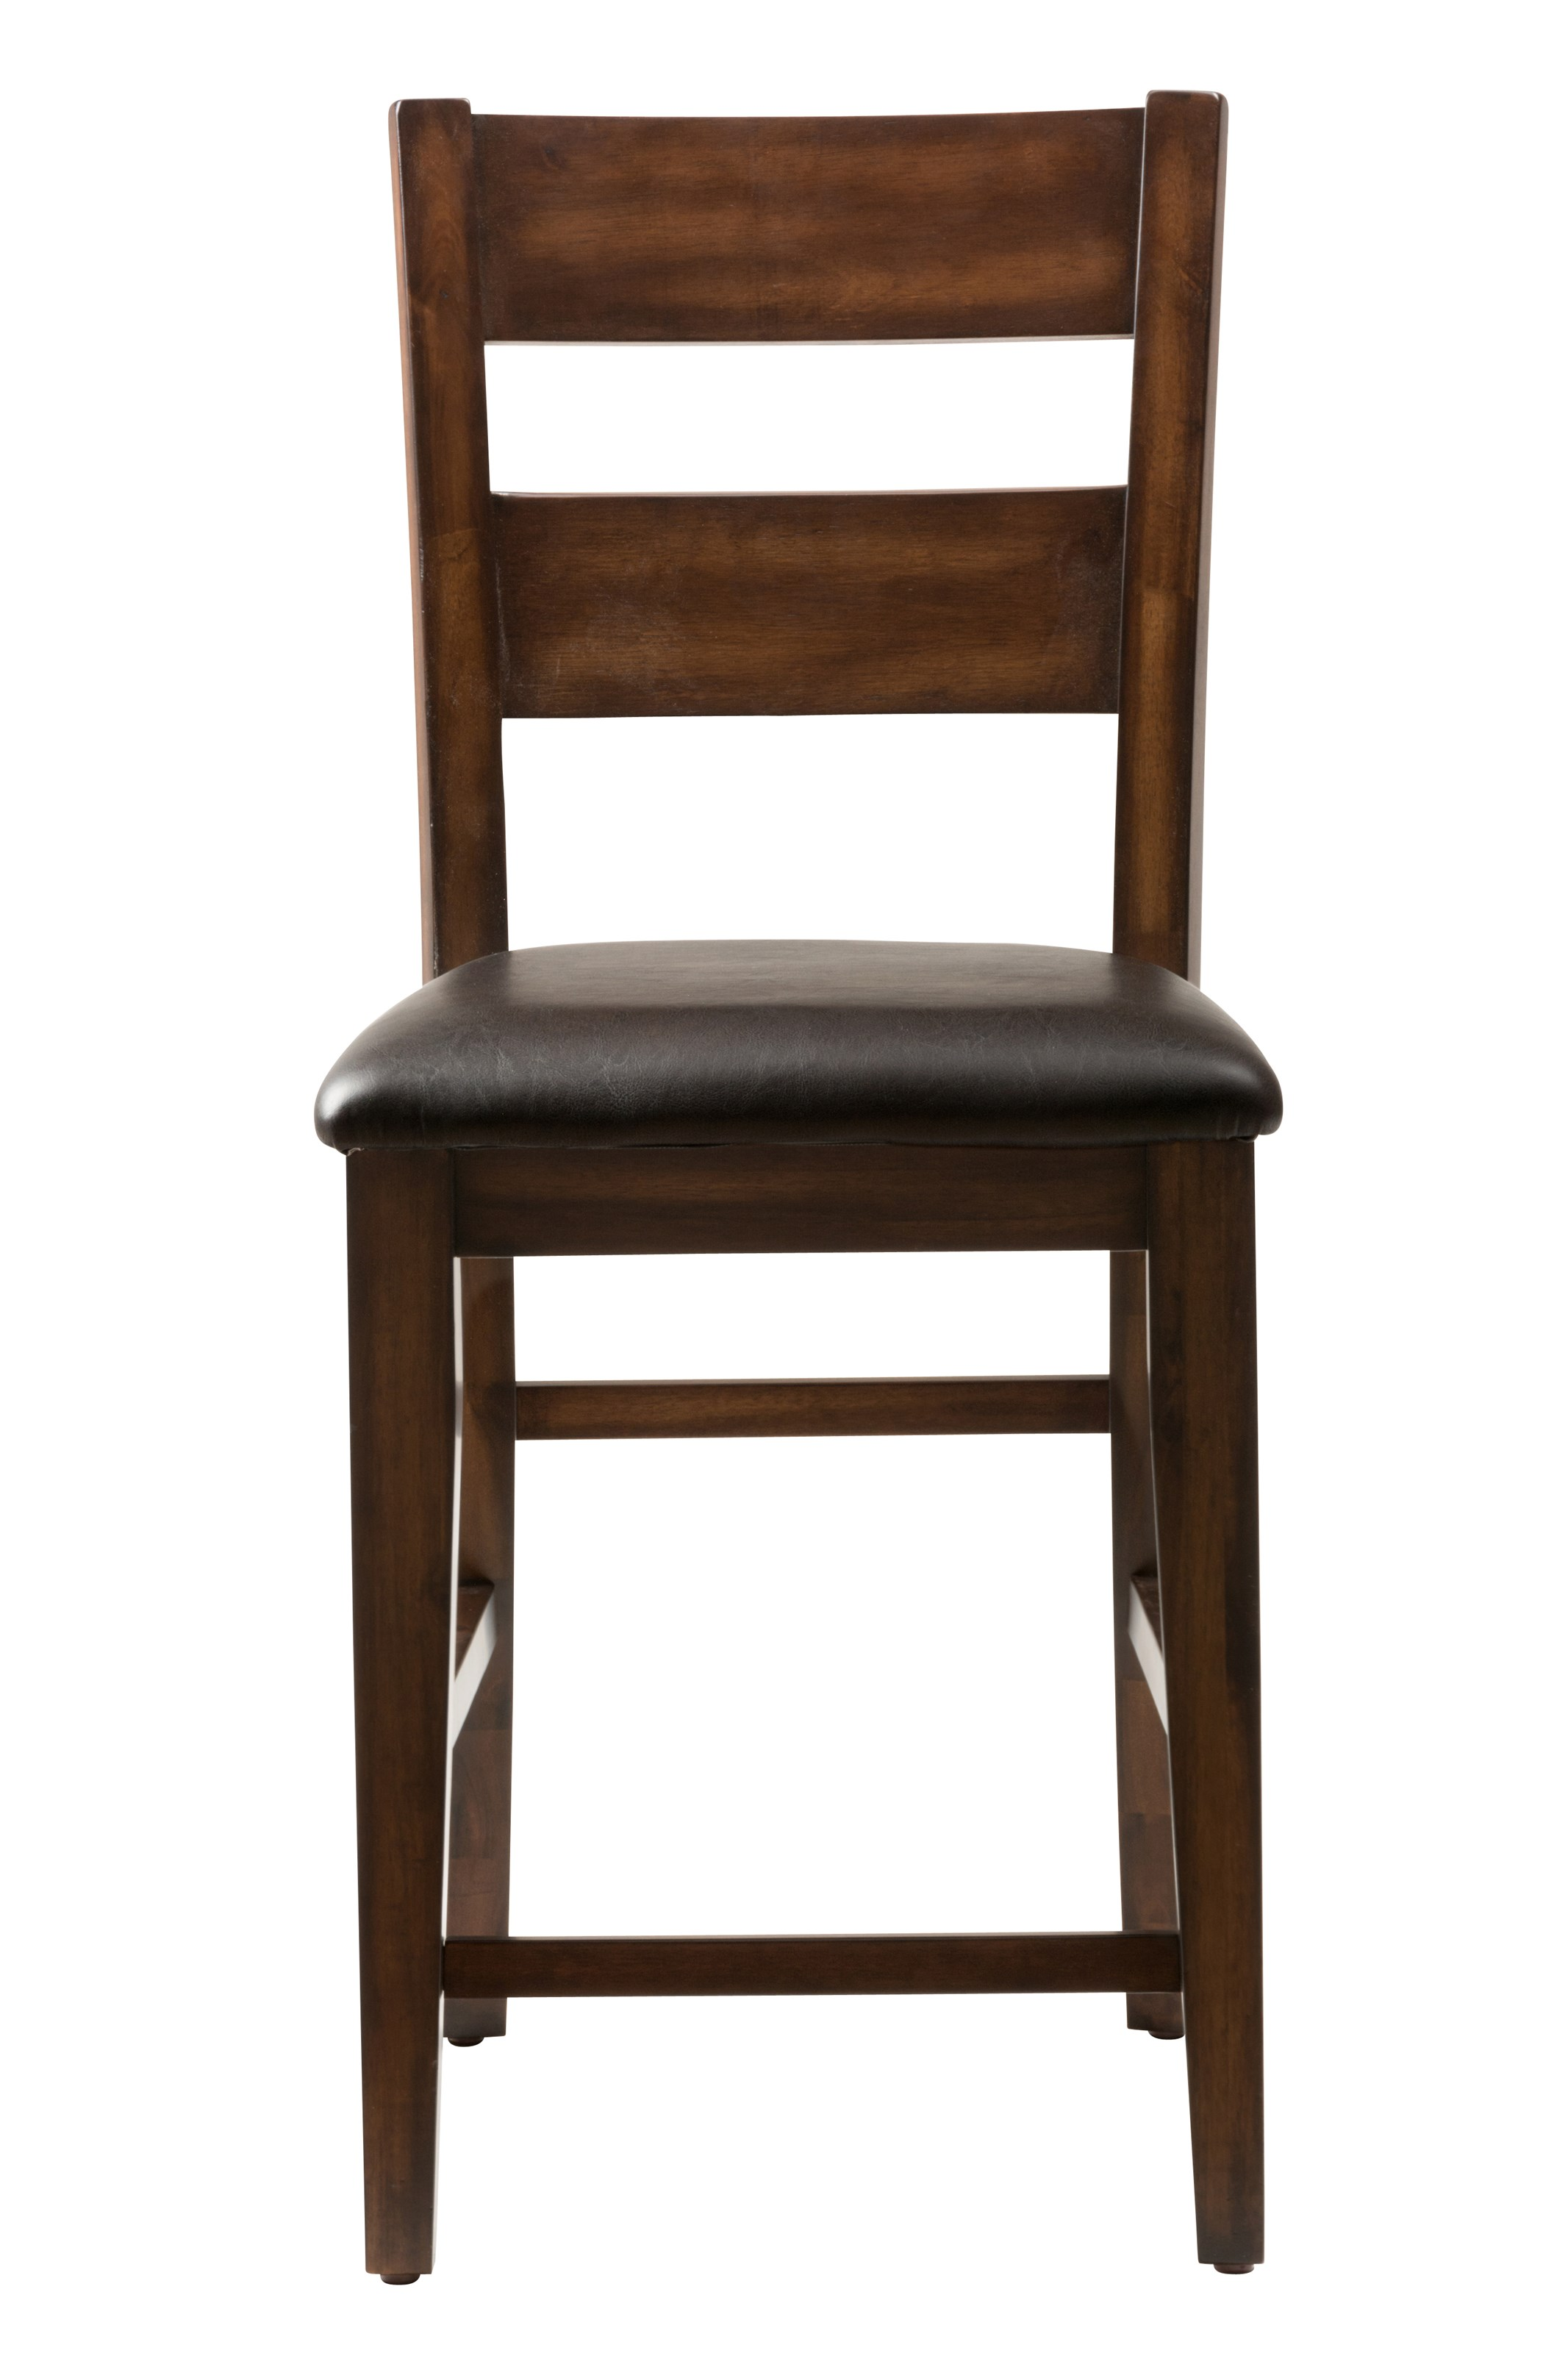 Jofran Cooke County Ladderback Counter Stool with Padded  : products2Fjofran2Fcolor2Fcooke20county20581581 bs478kd b5 from www.zaksfurniture.com size 2133 x 3200 jpeg 393kB